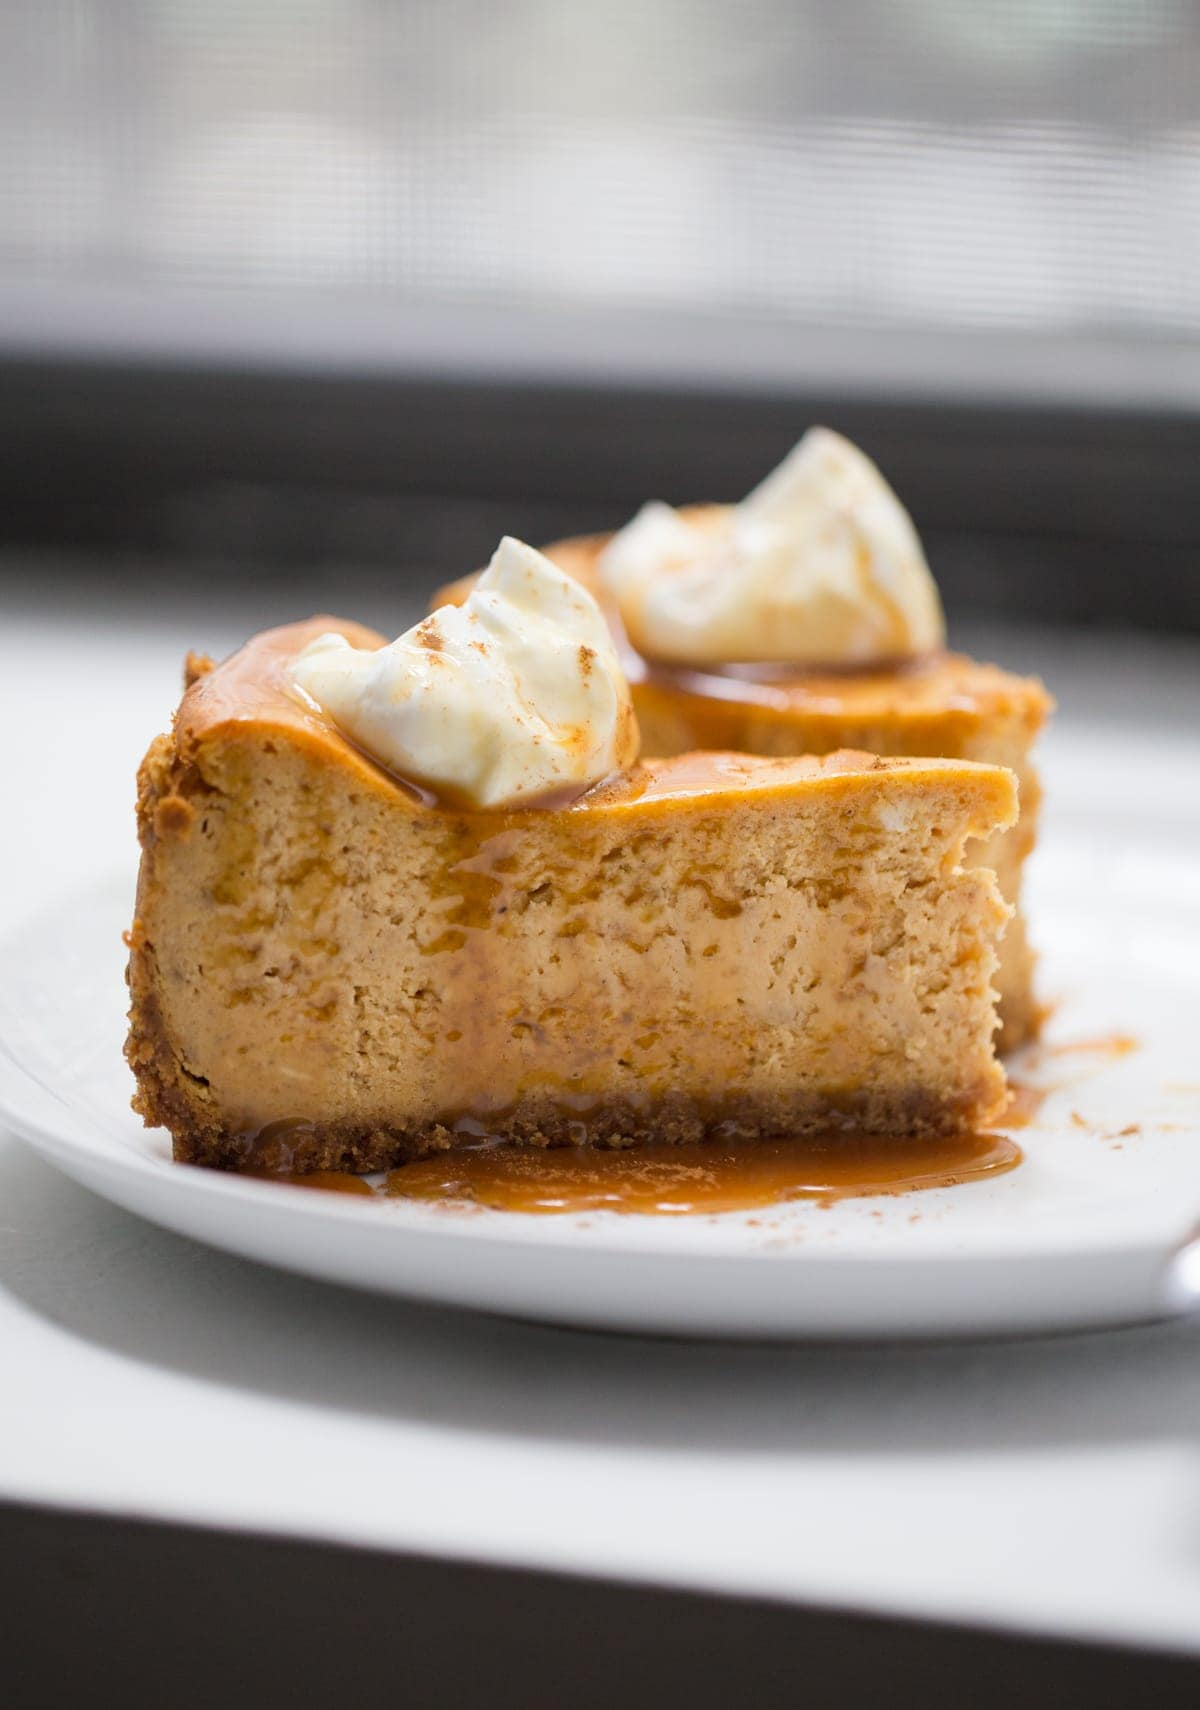 Slice of Cheesecake with caramel sauce